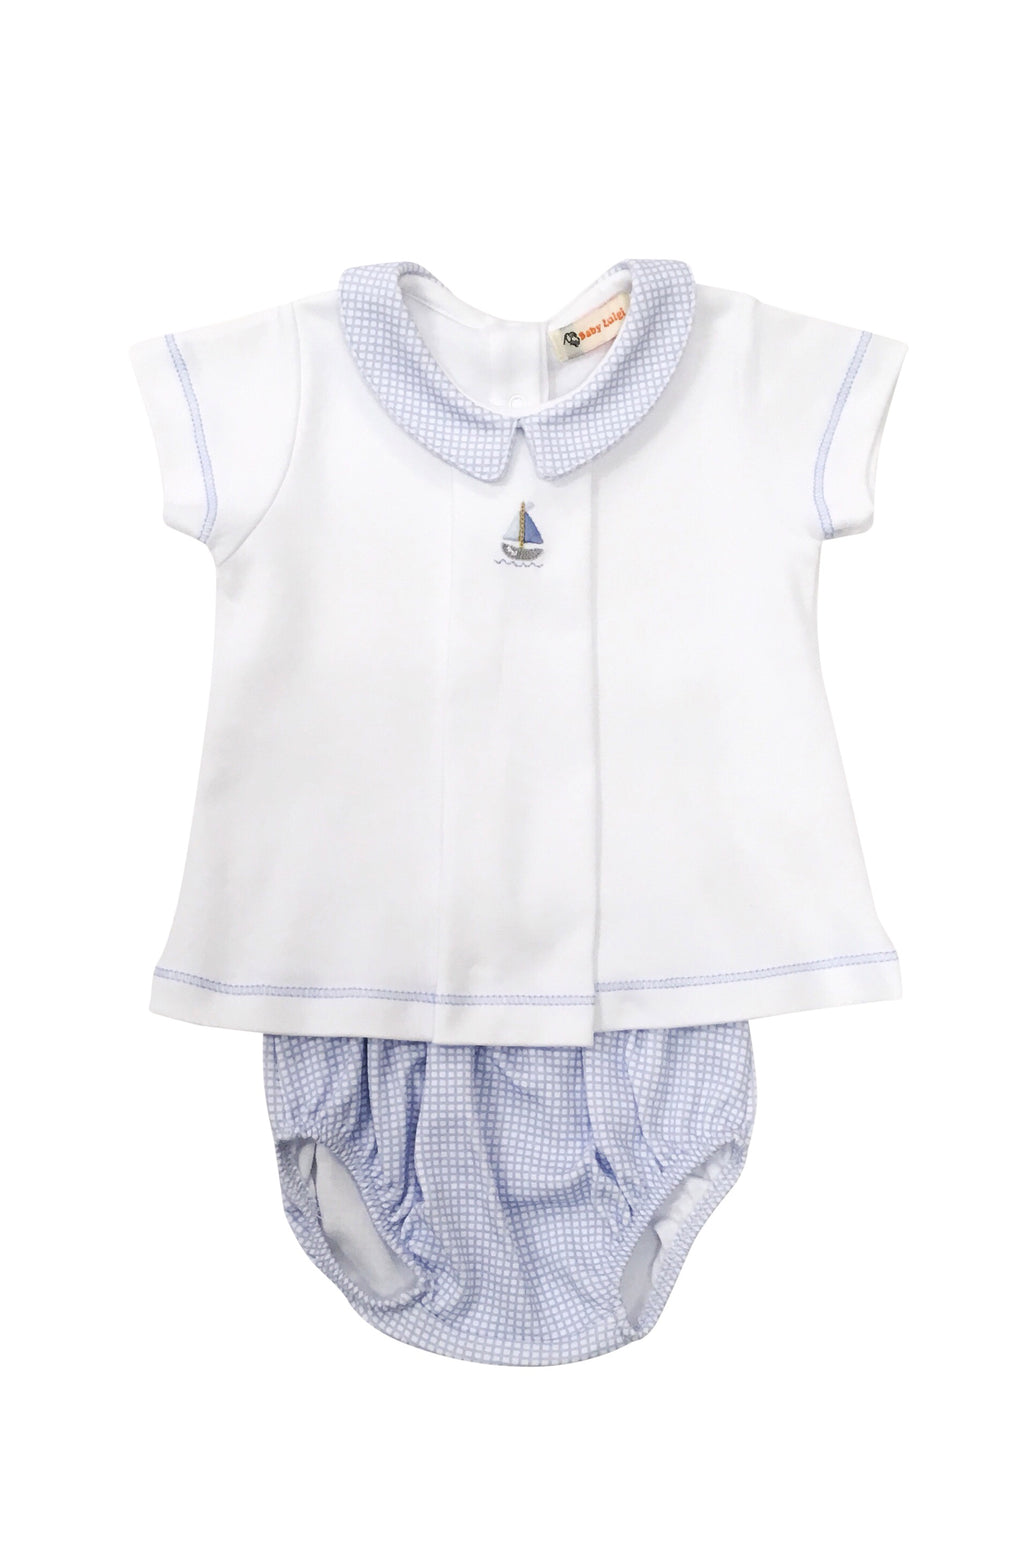 Boy White with Blue Gingham Knit Bloomer Set - Sailboat - Born Childrens Boutique